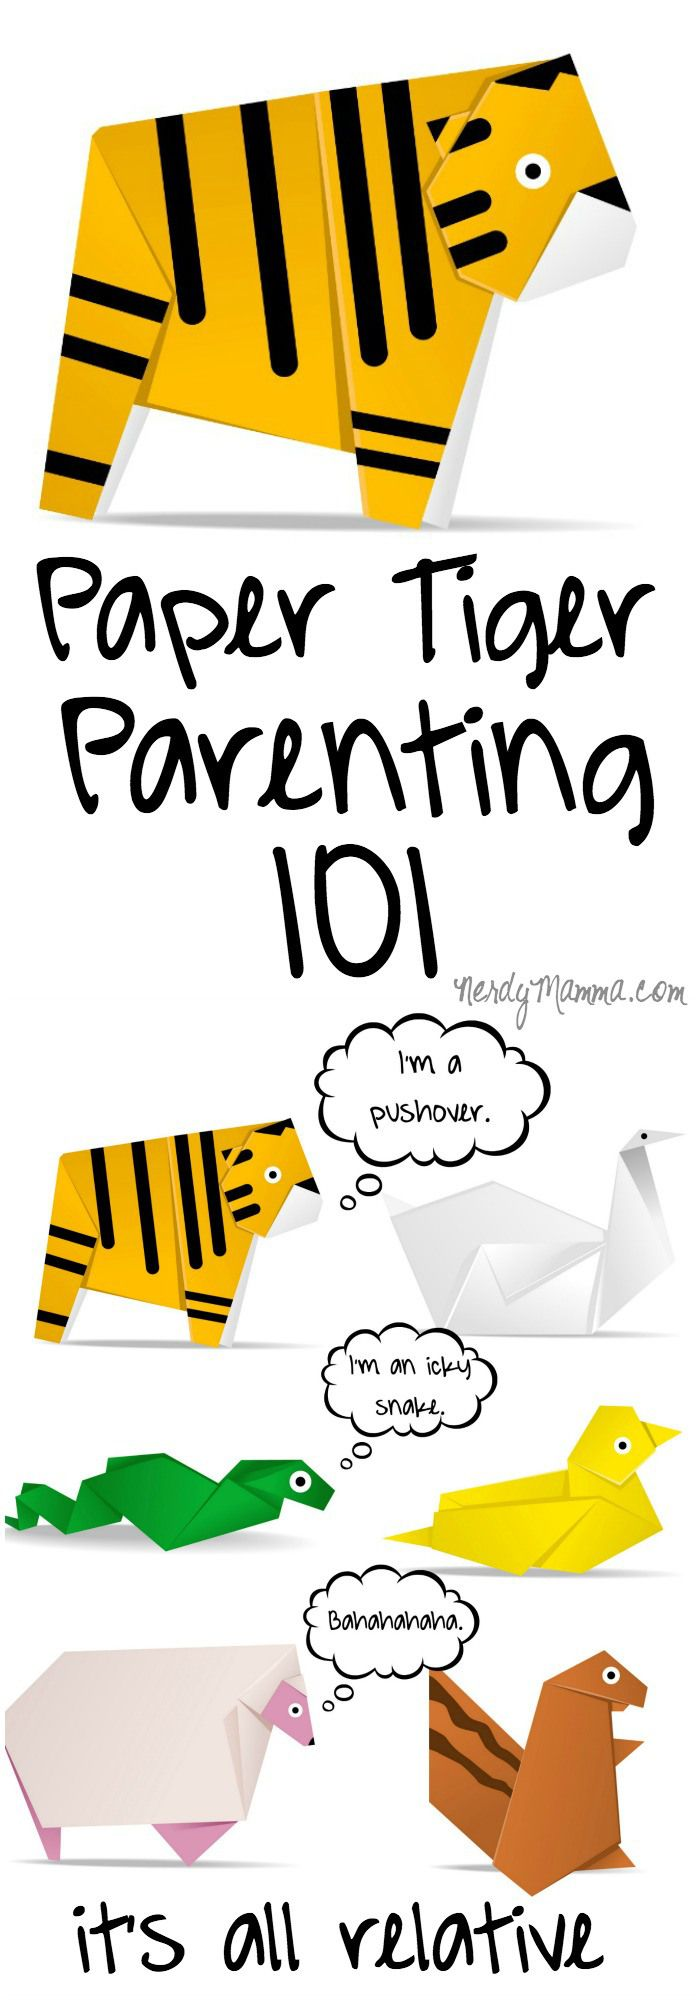 I freely admit I'm a Paper Tiger Parent. I am such a shoot-from-the-hip-parent, but it makes life fun. So...